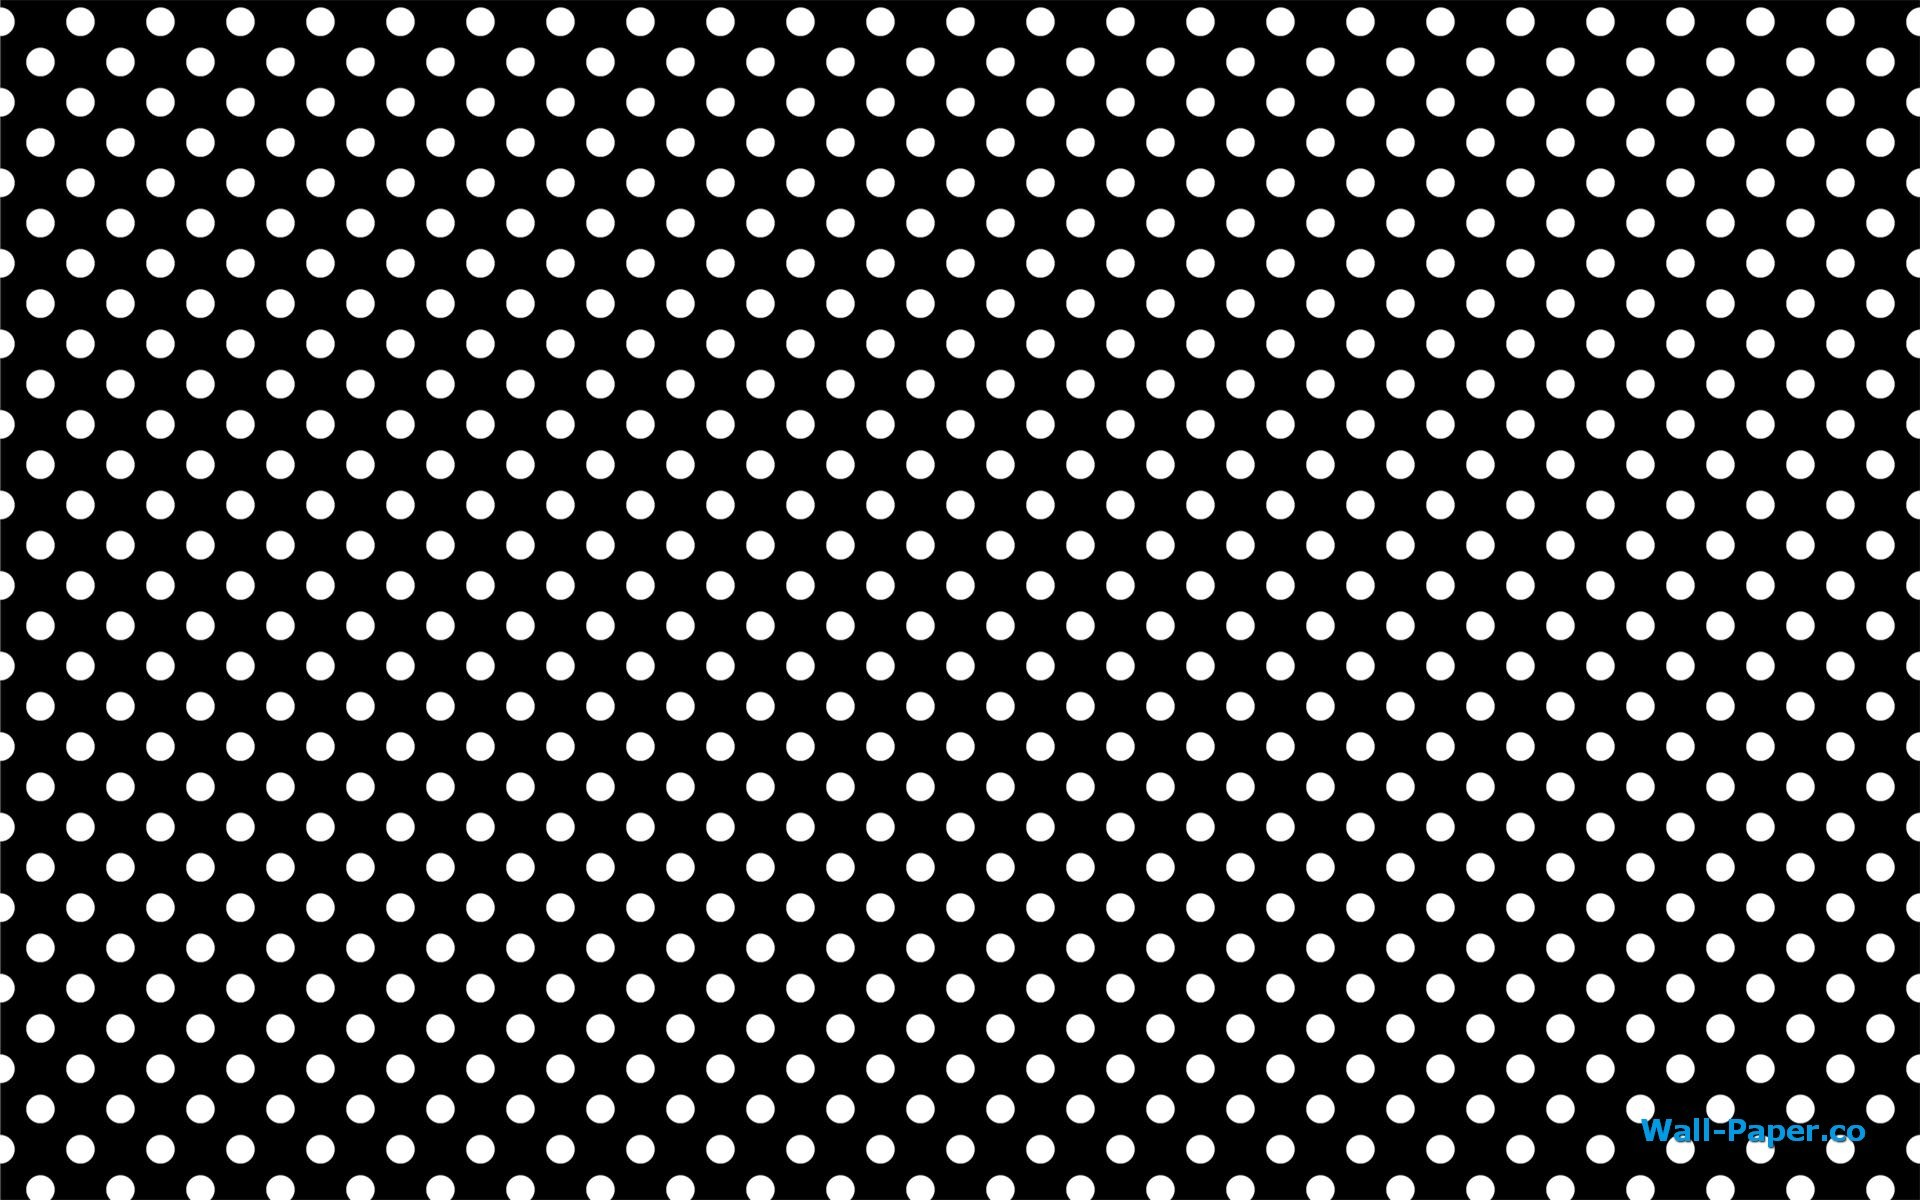 Polka Dot Wallpaper. Best and fine collection of wallpapers HD in .